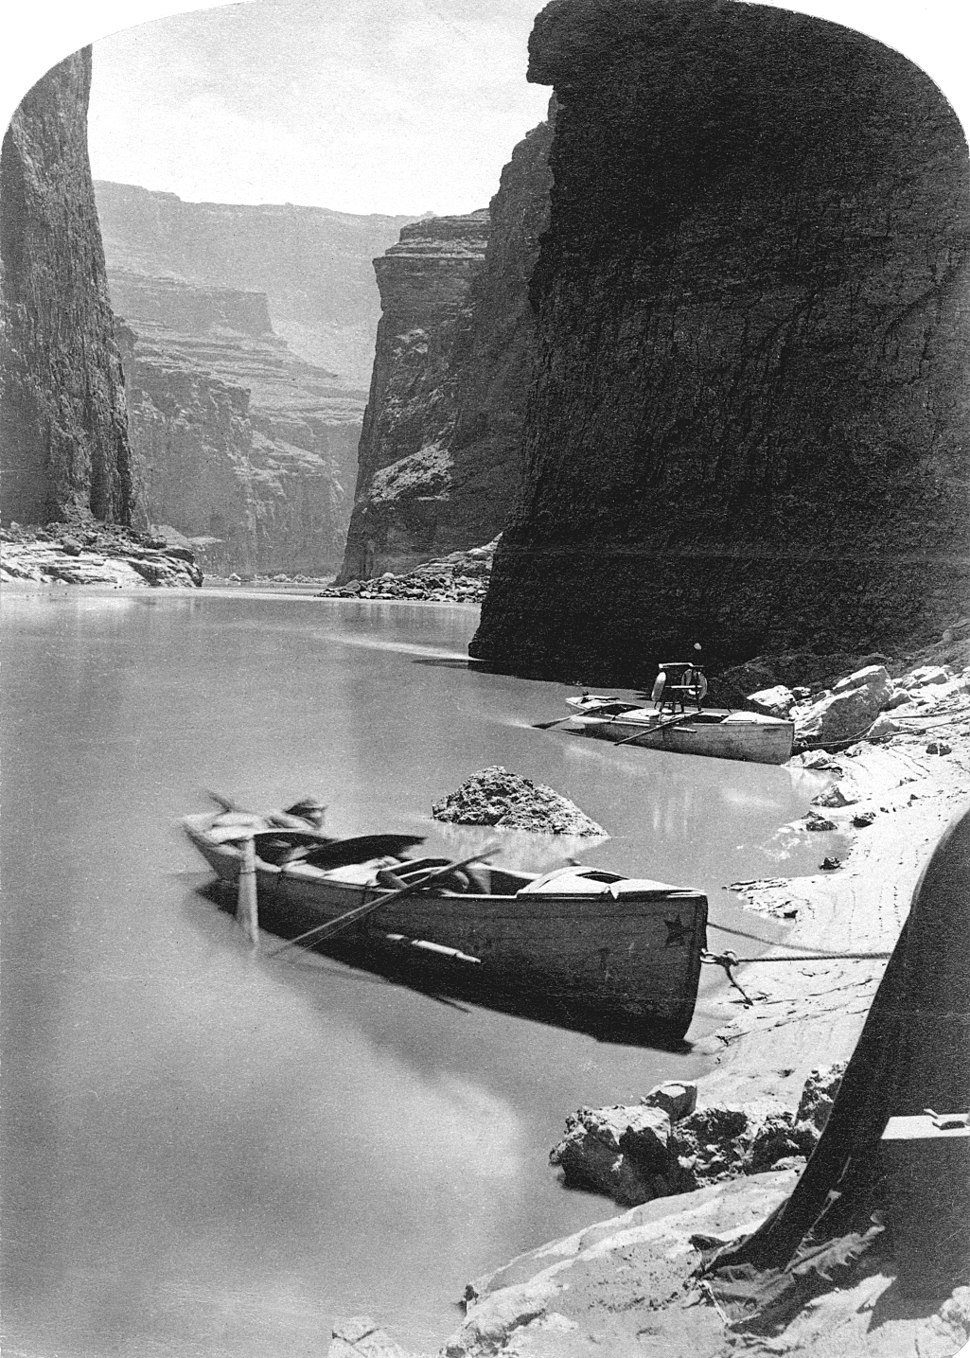 'Noon Day Rest in Marble Canyon' from the second Powell Expedition 1872